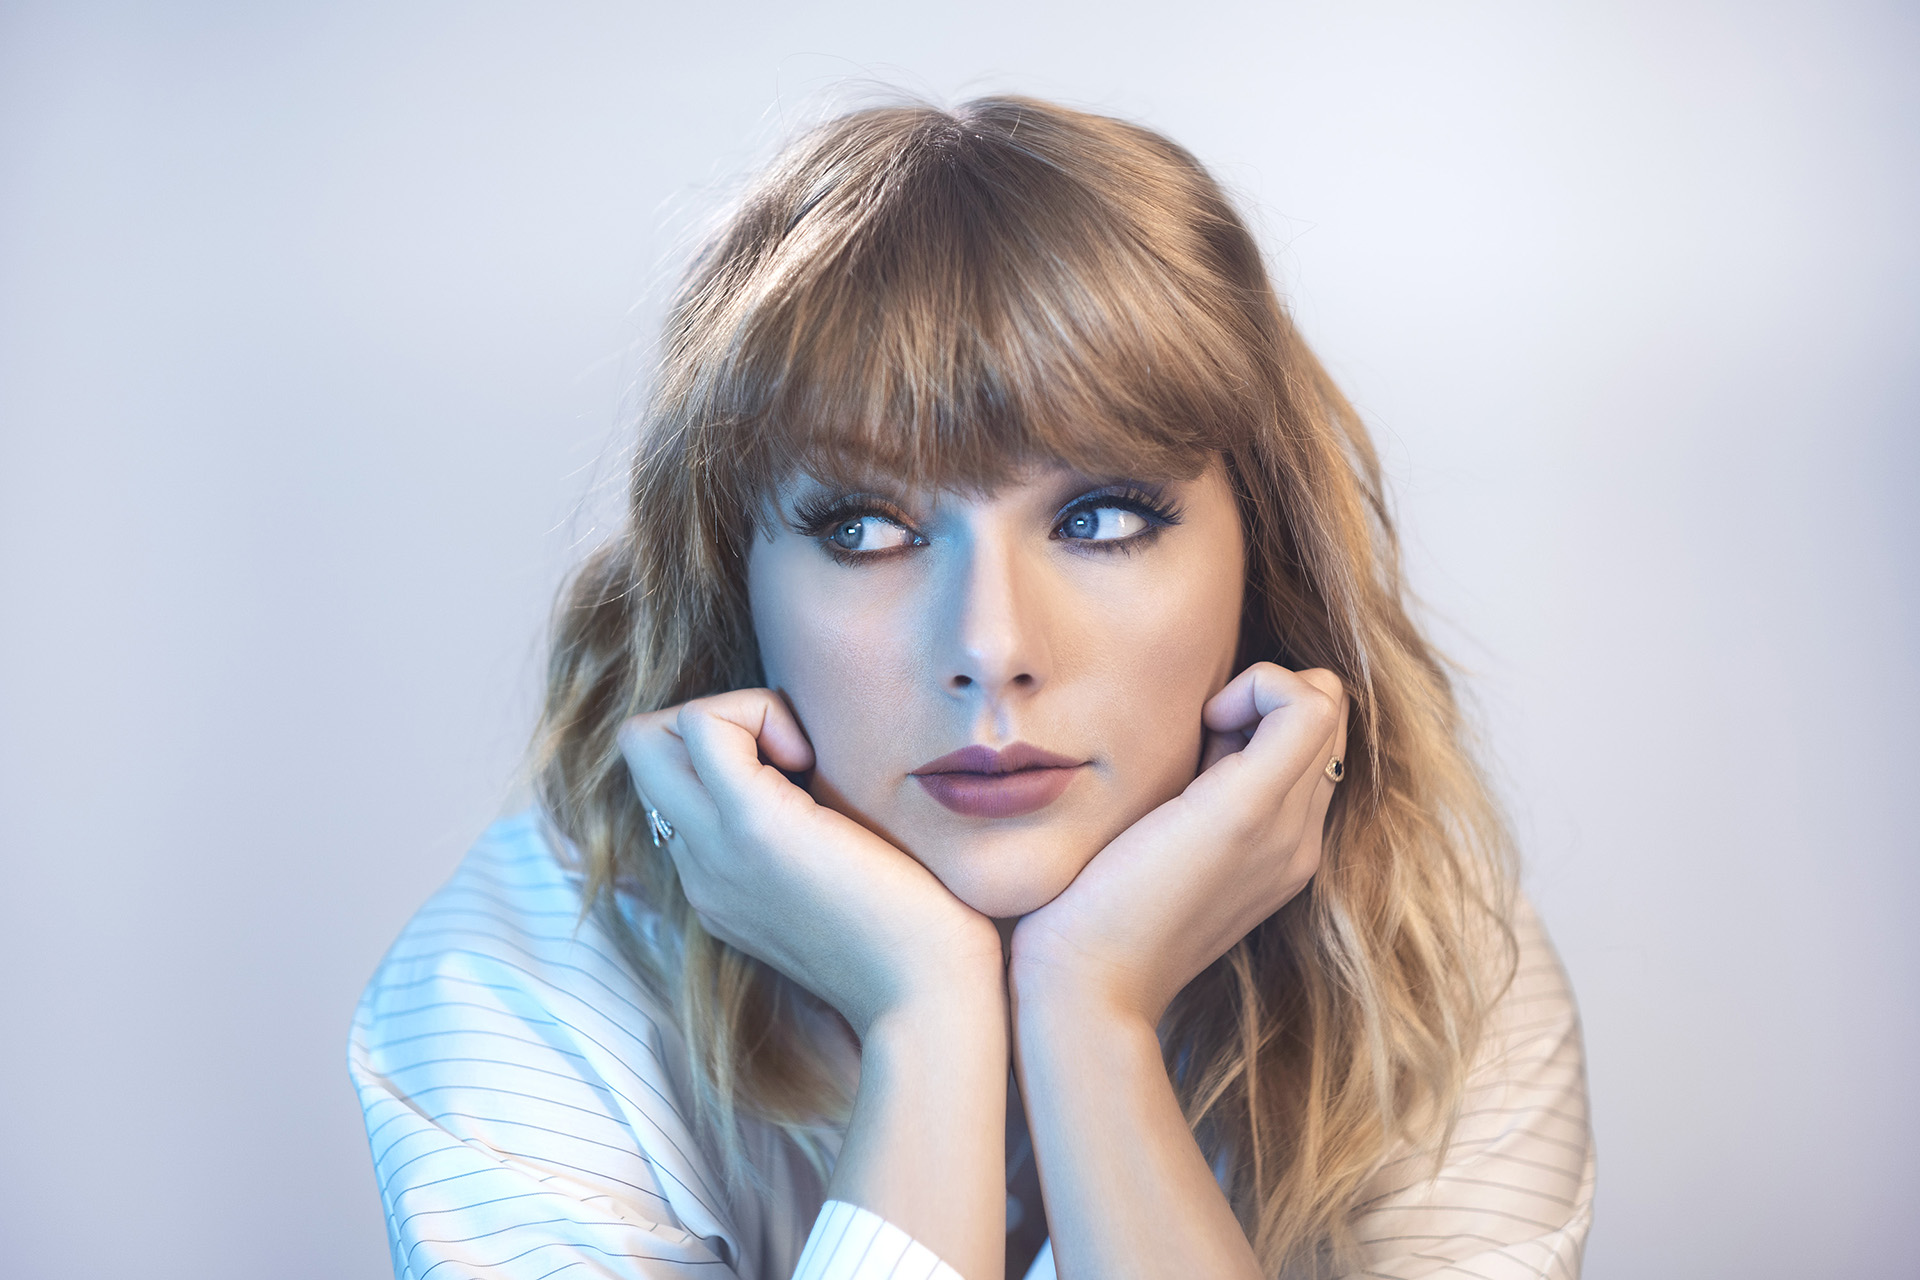 2018 Taylor Swift Hd Music 4k Wallpapers Images Backgrounds Photos And Pictures